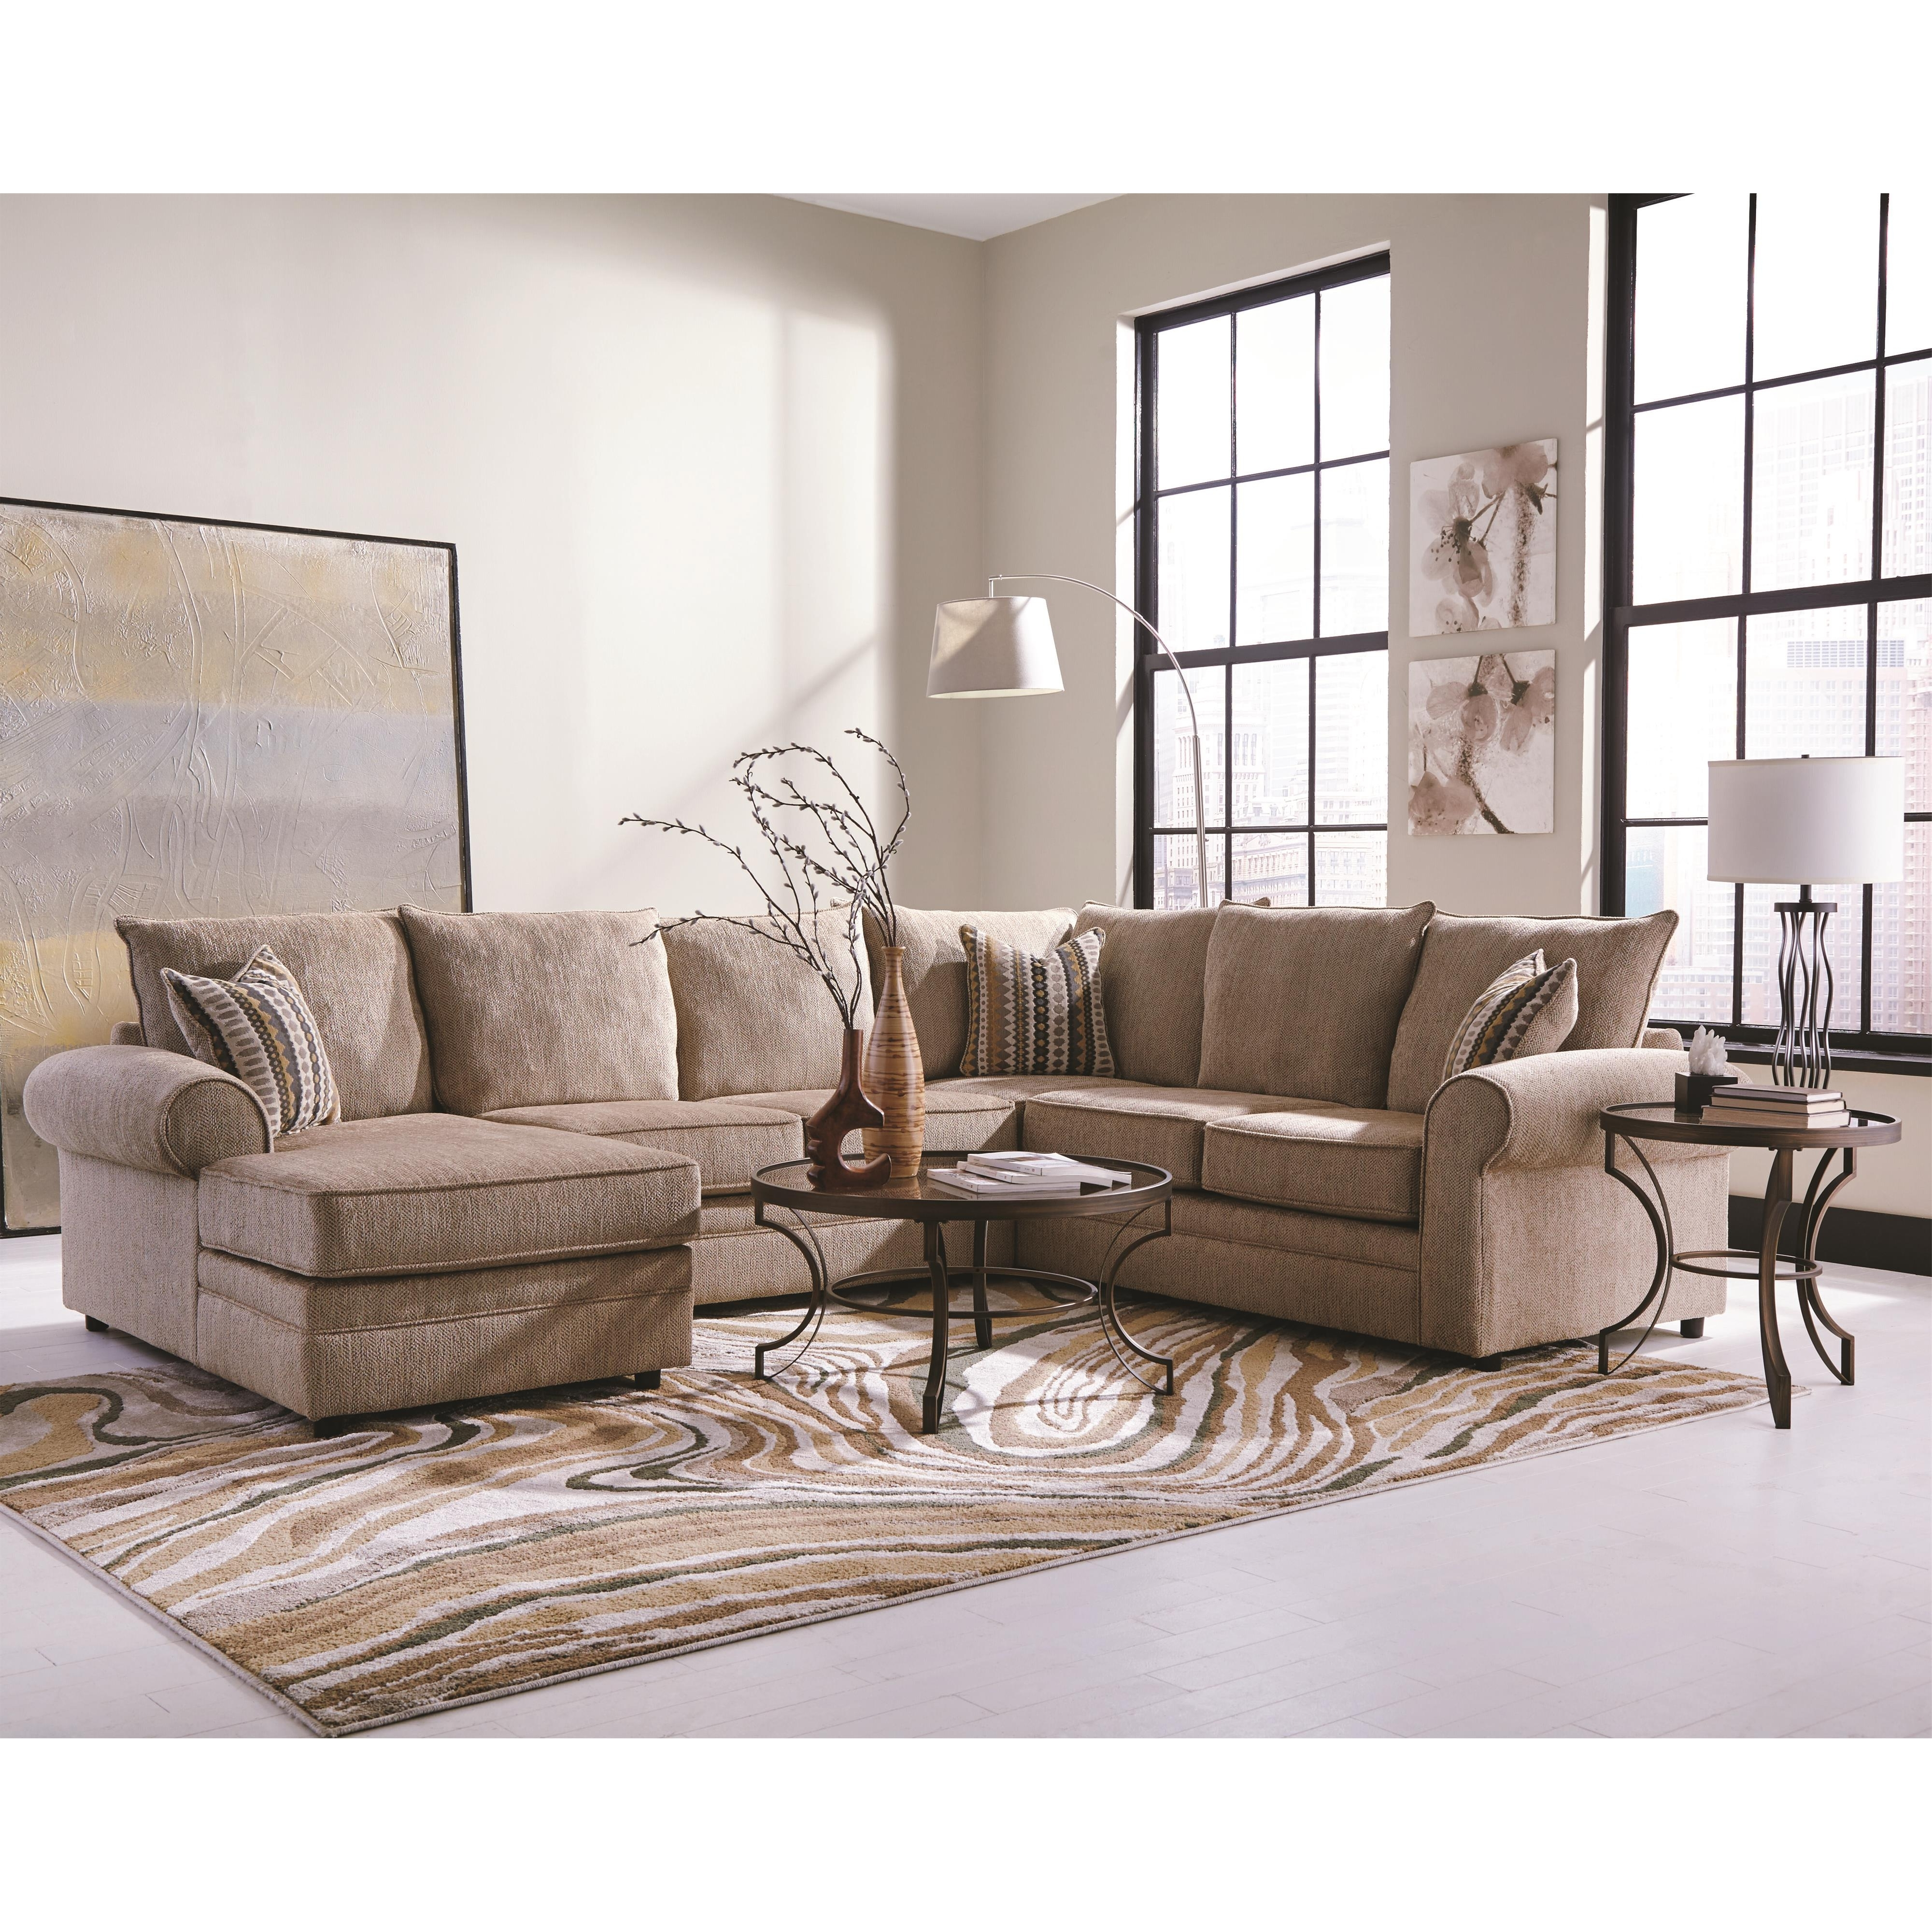 Most Up To Date Philadelphia Sectional Sofas Inside Fairhaven Cream Colored U Shaped Sectional With Chaise (View 8 of 20)